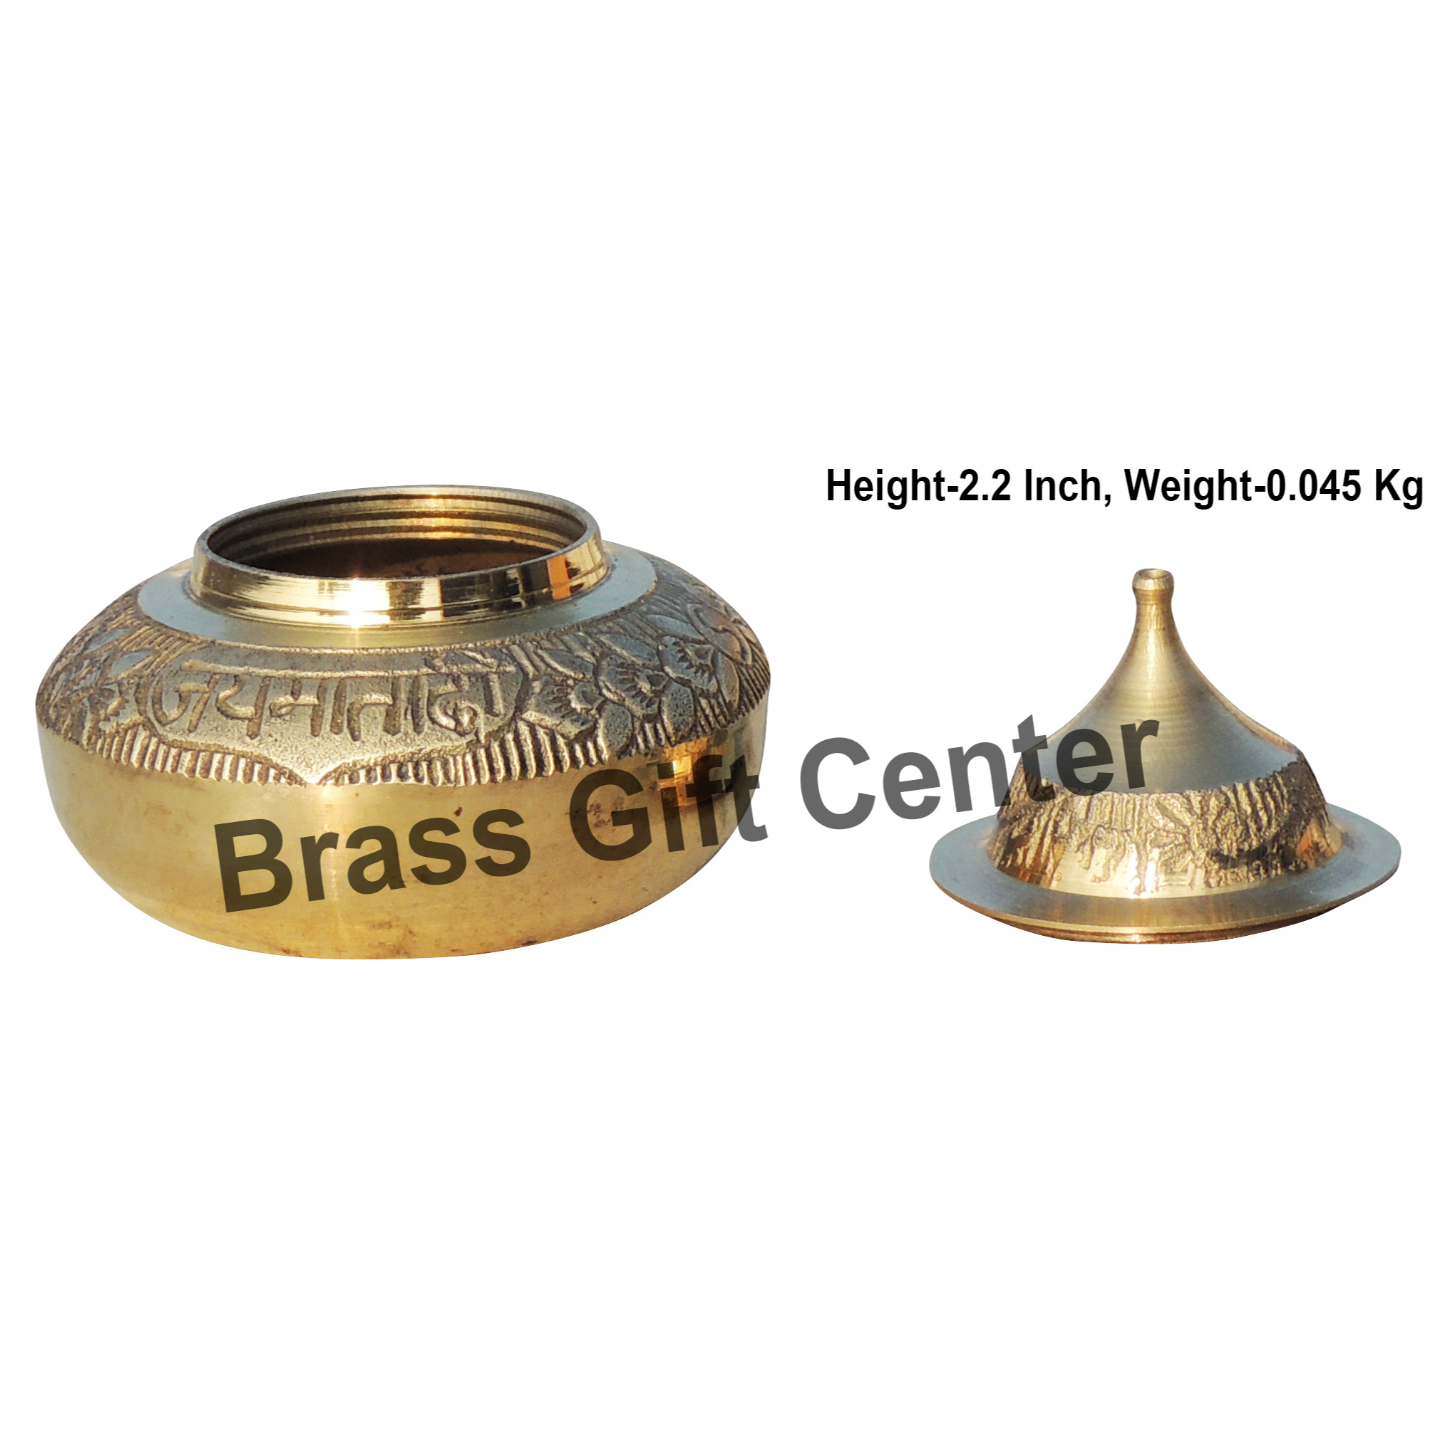 Brass Handicraft Sindoor Dani, Dabbi With Brass Finish - Height 2.2  Inch F416 D